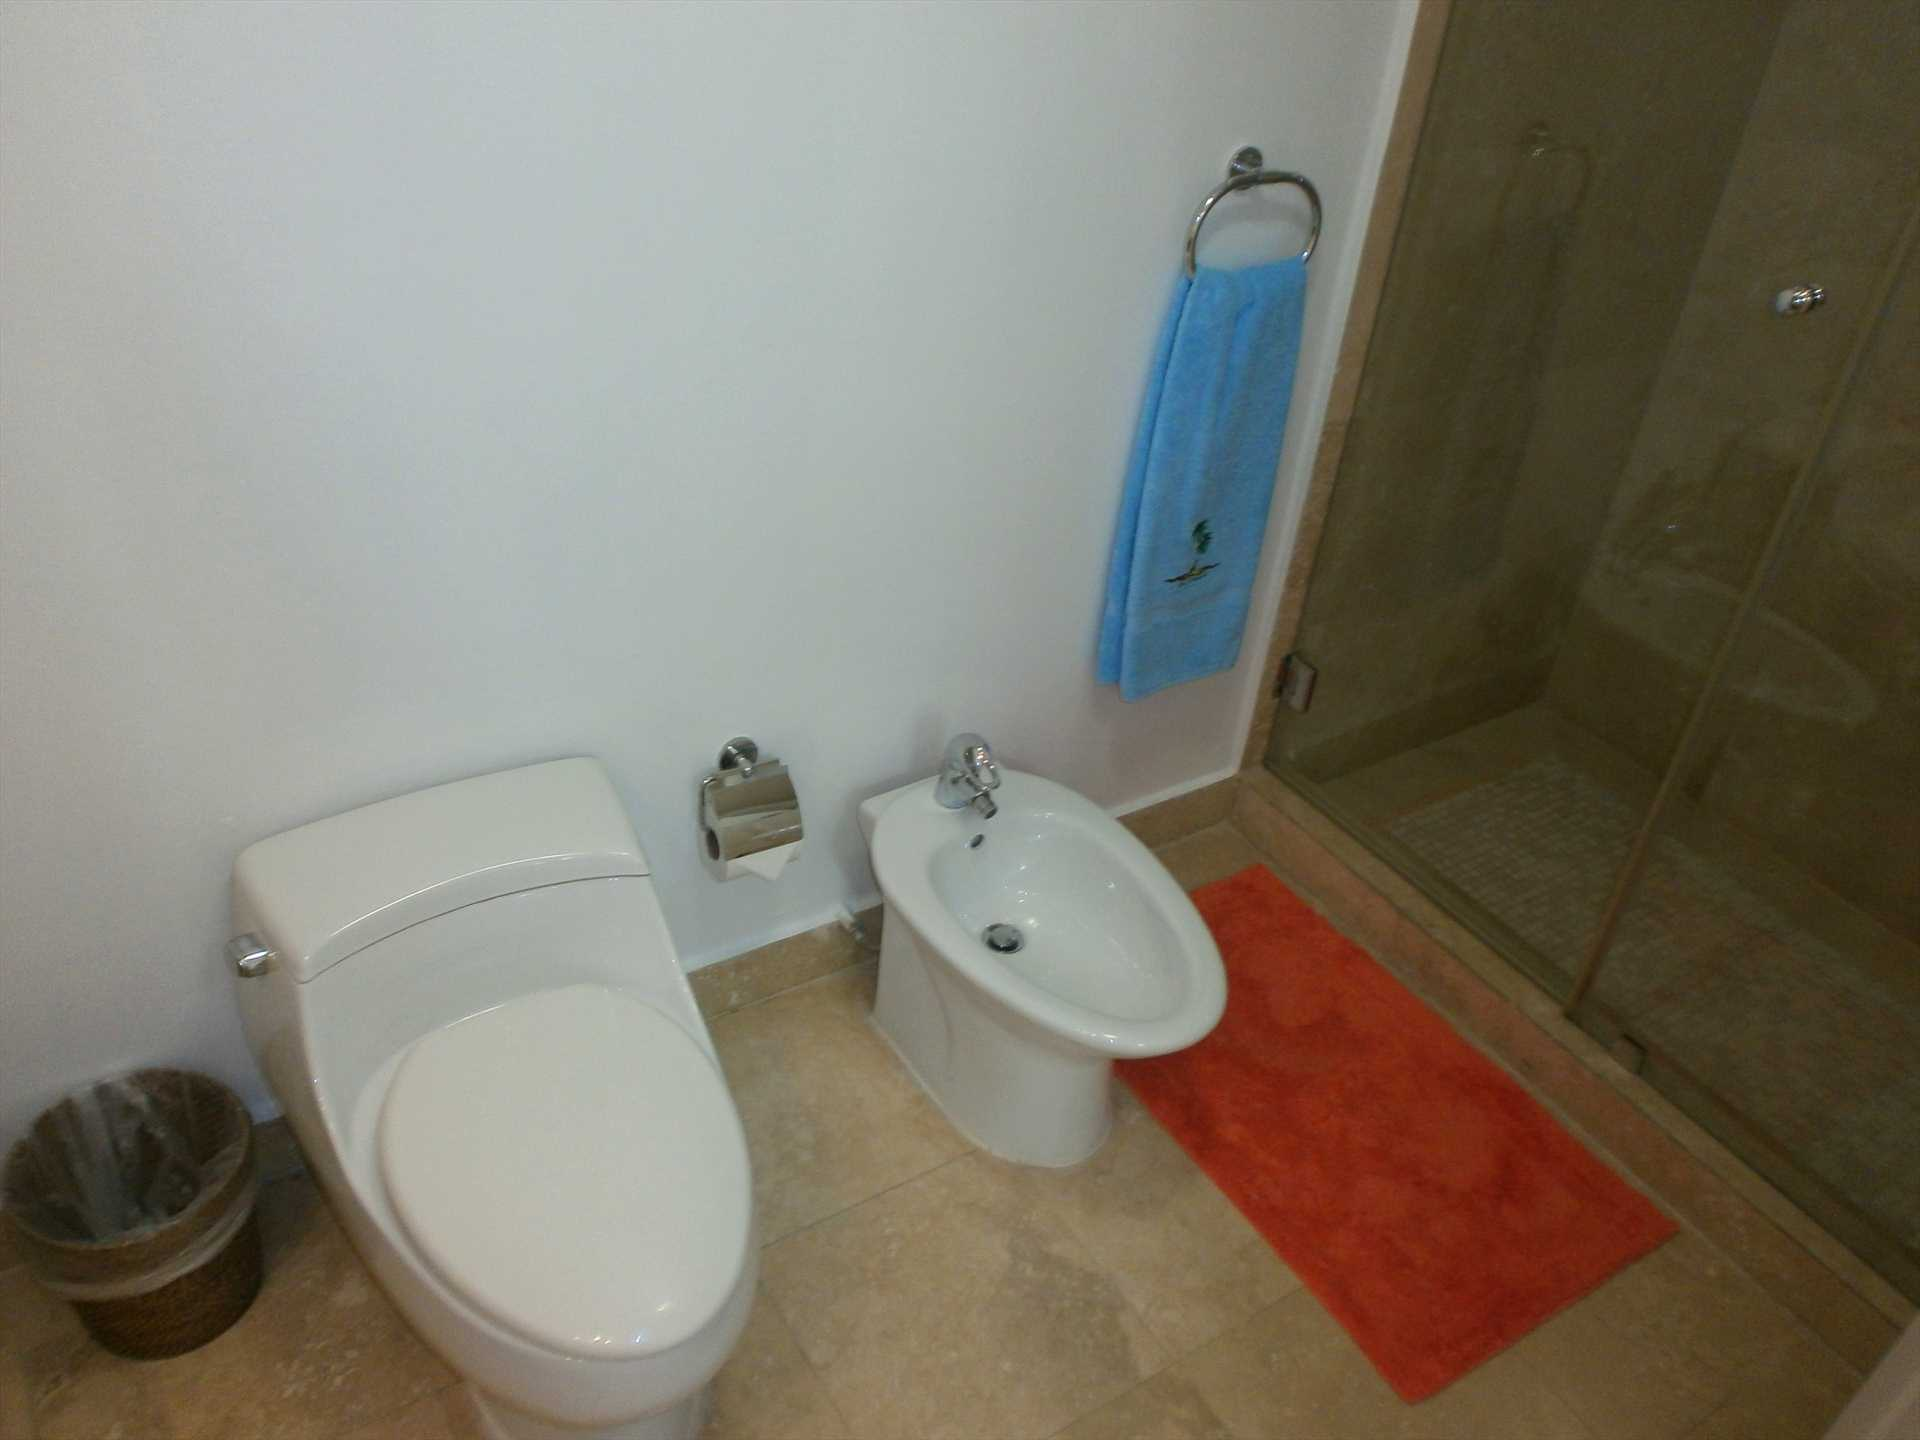 . . ., toilet, bidet and glass-enclosed shower!